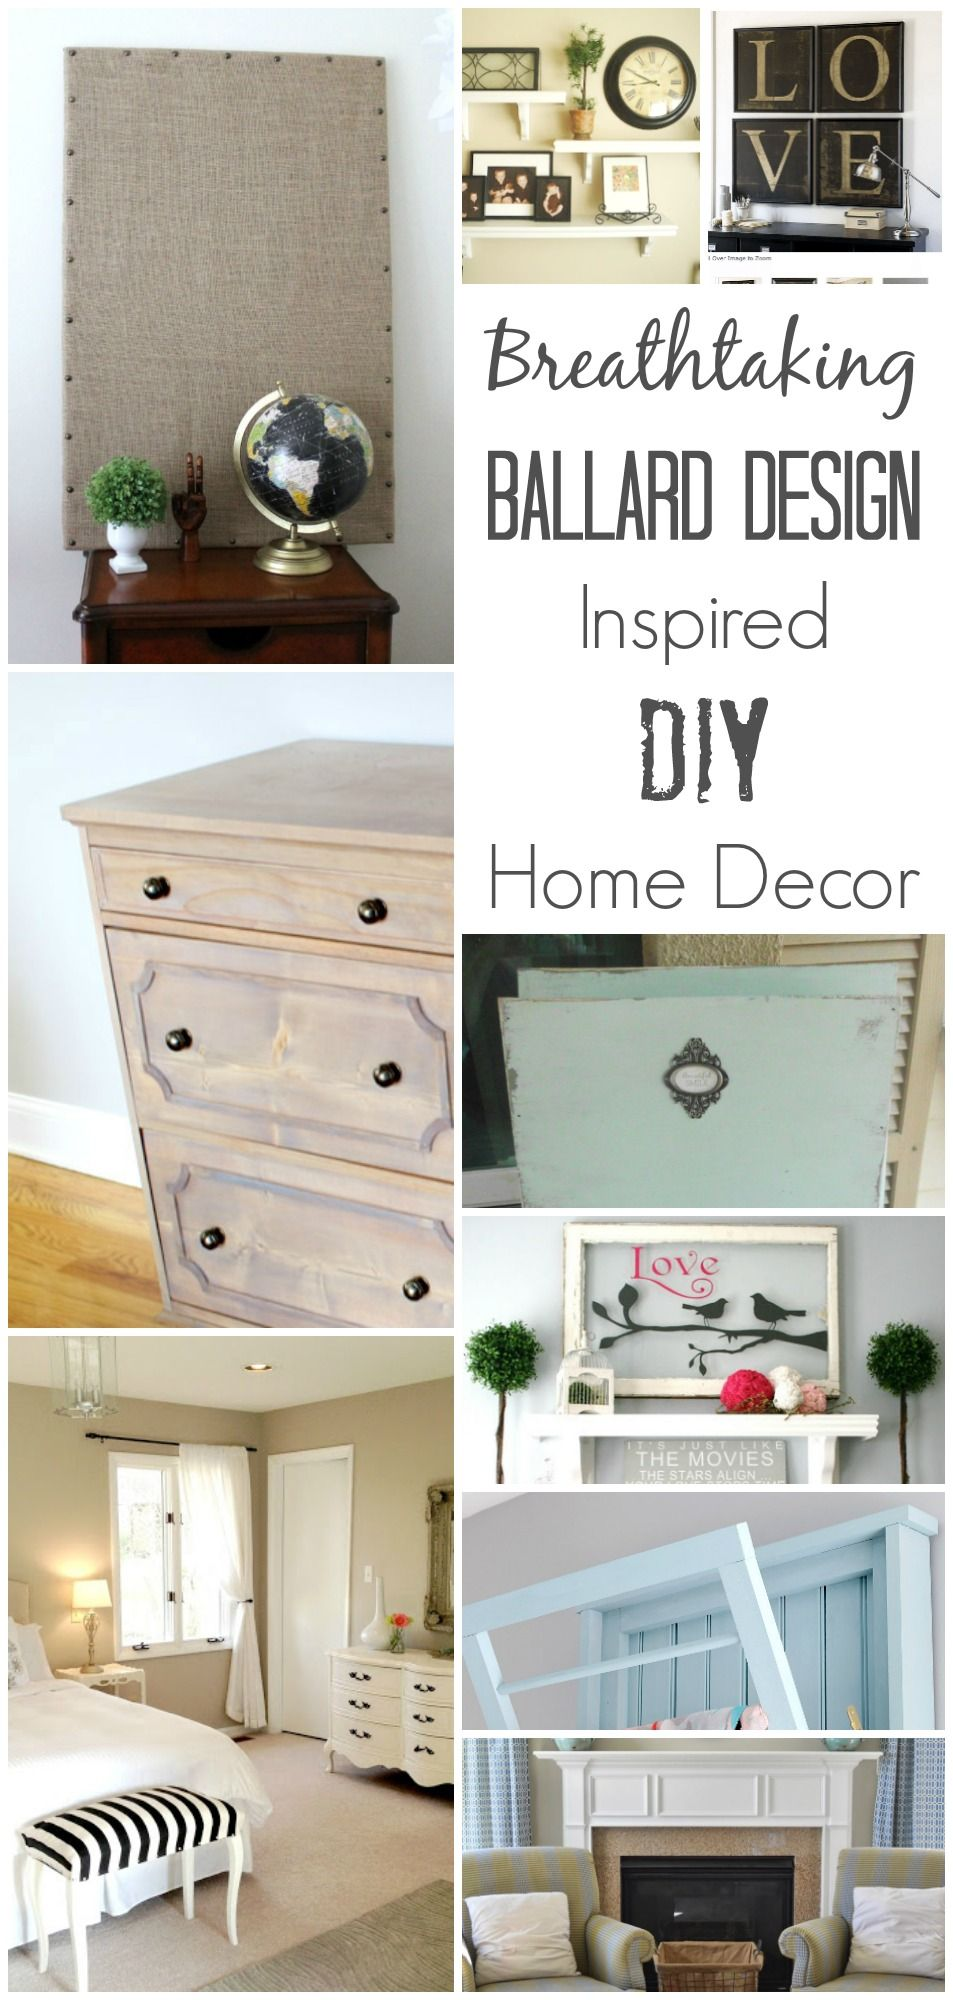 DIY Ballard Design Inspired Home Decor DIY